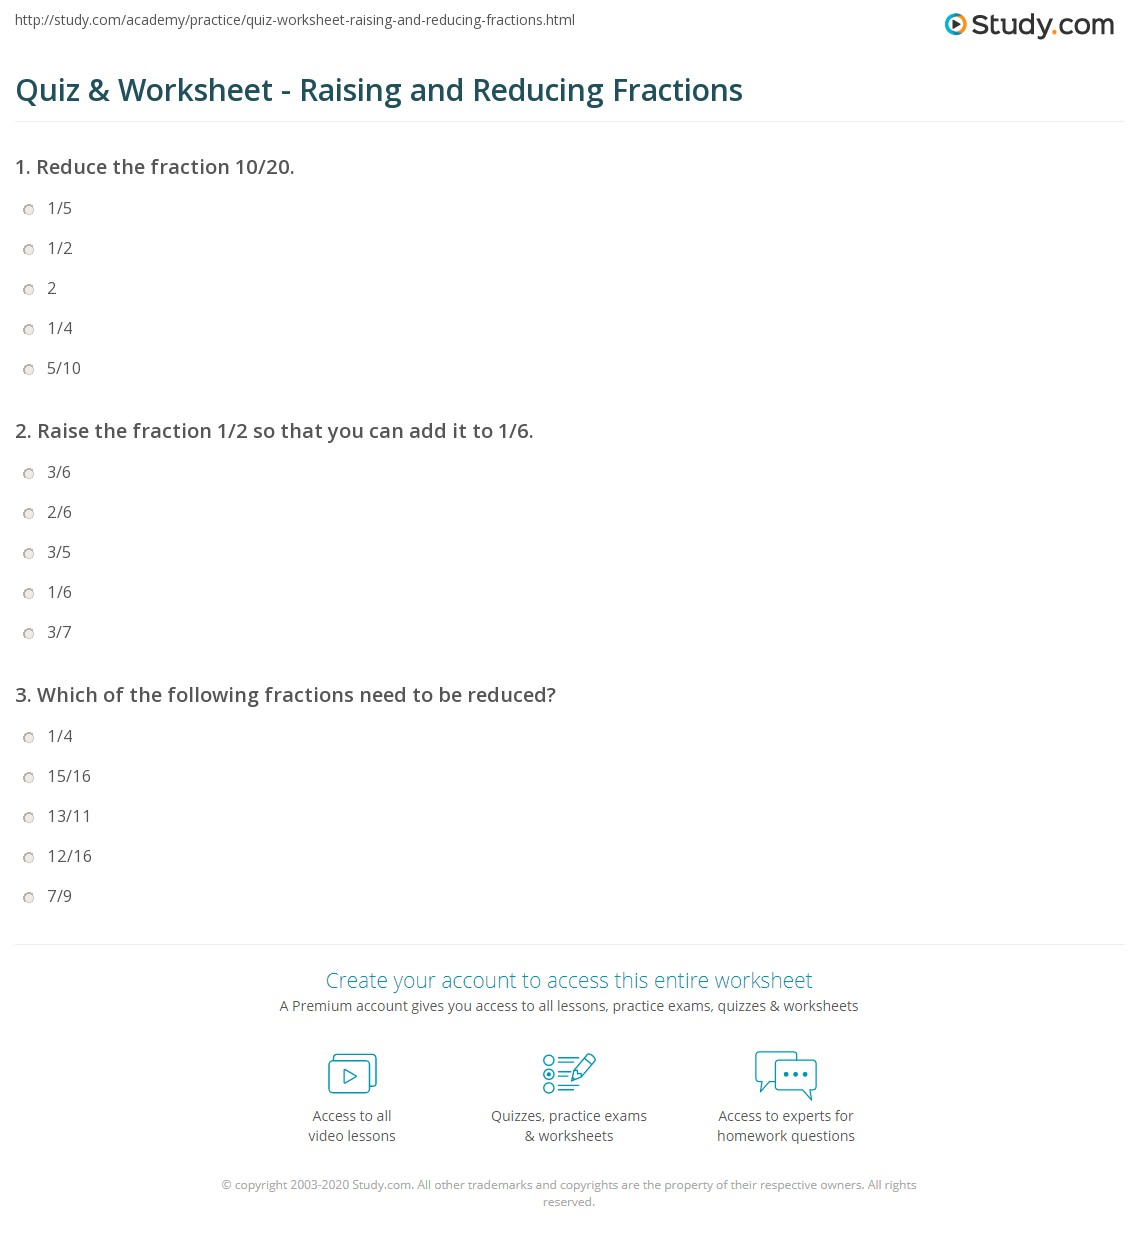 Reducing Fractions Worksheets